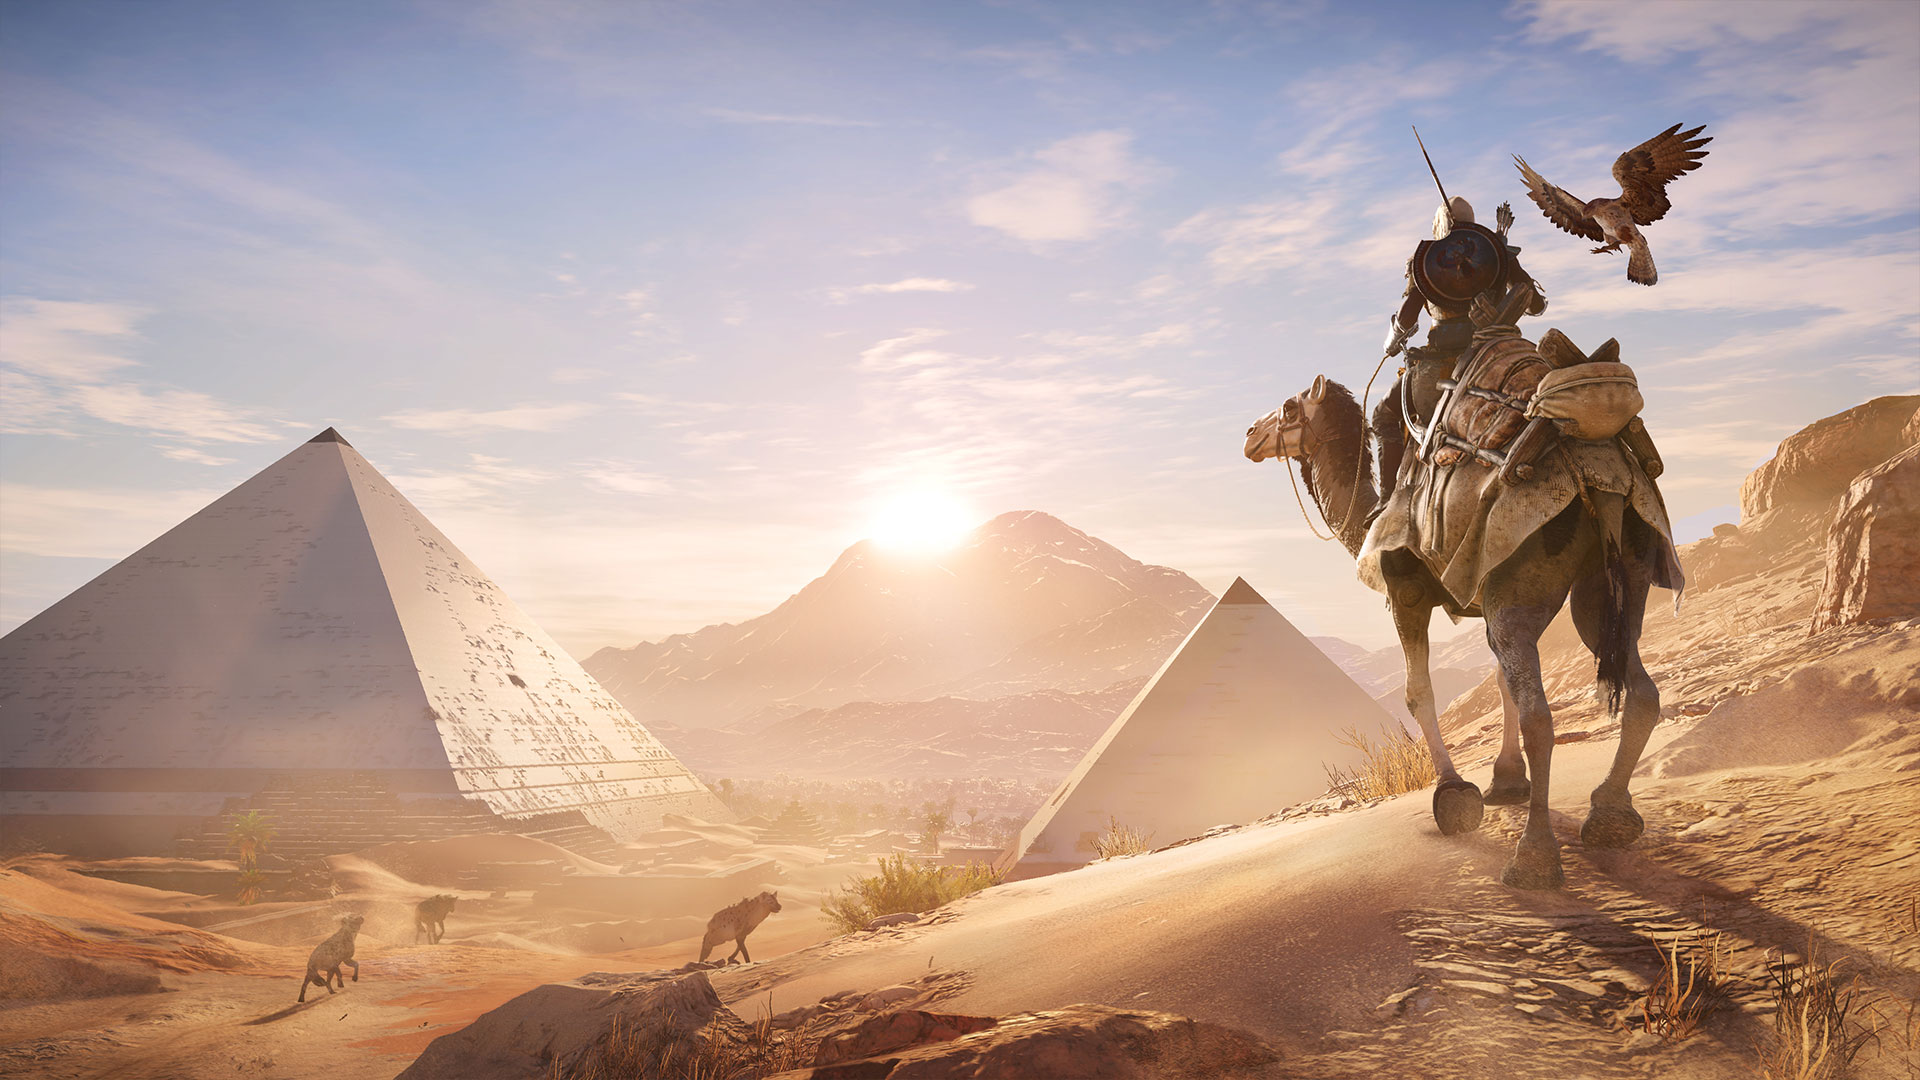 بررسی بازی Assassin's Creed : Origins